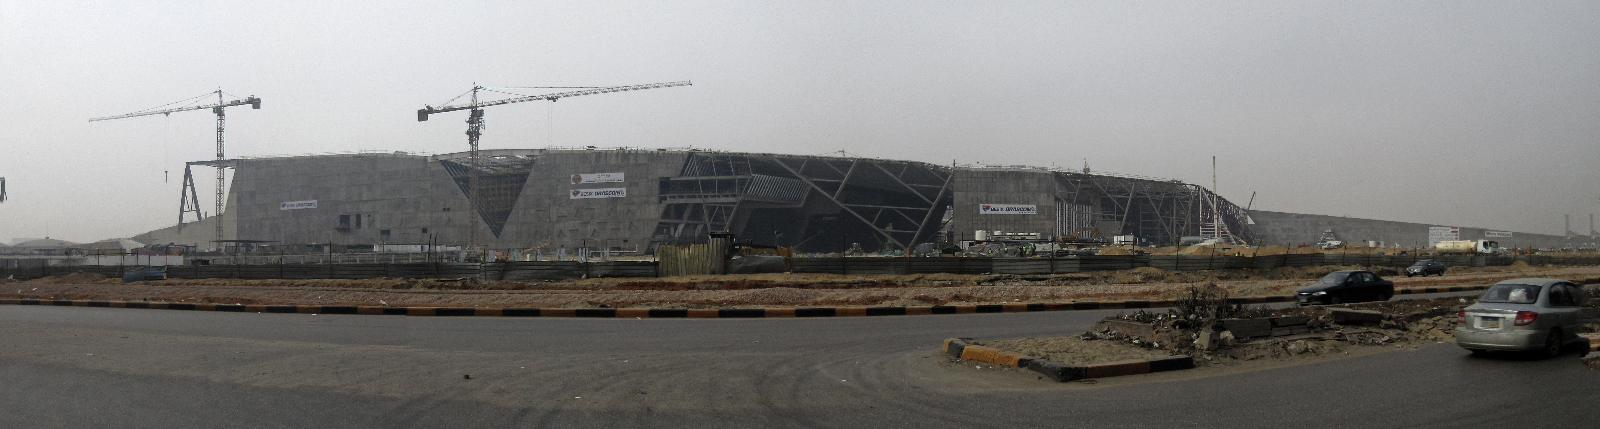 The Grand Egyptian Museum (GEM) under construction.  Photo by Tom Sawyer. CC BY-ND 2.0.